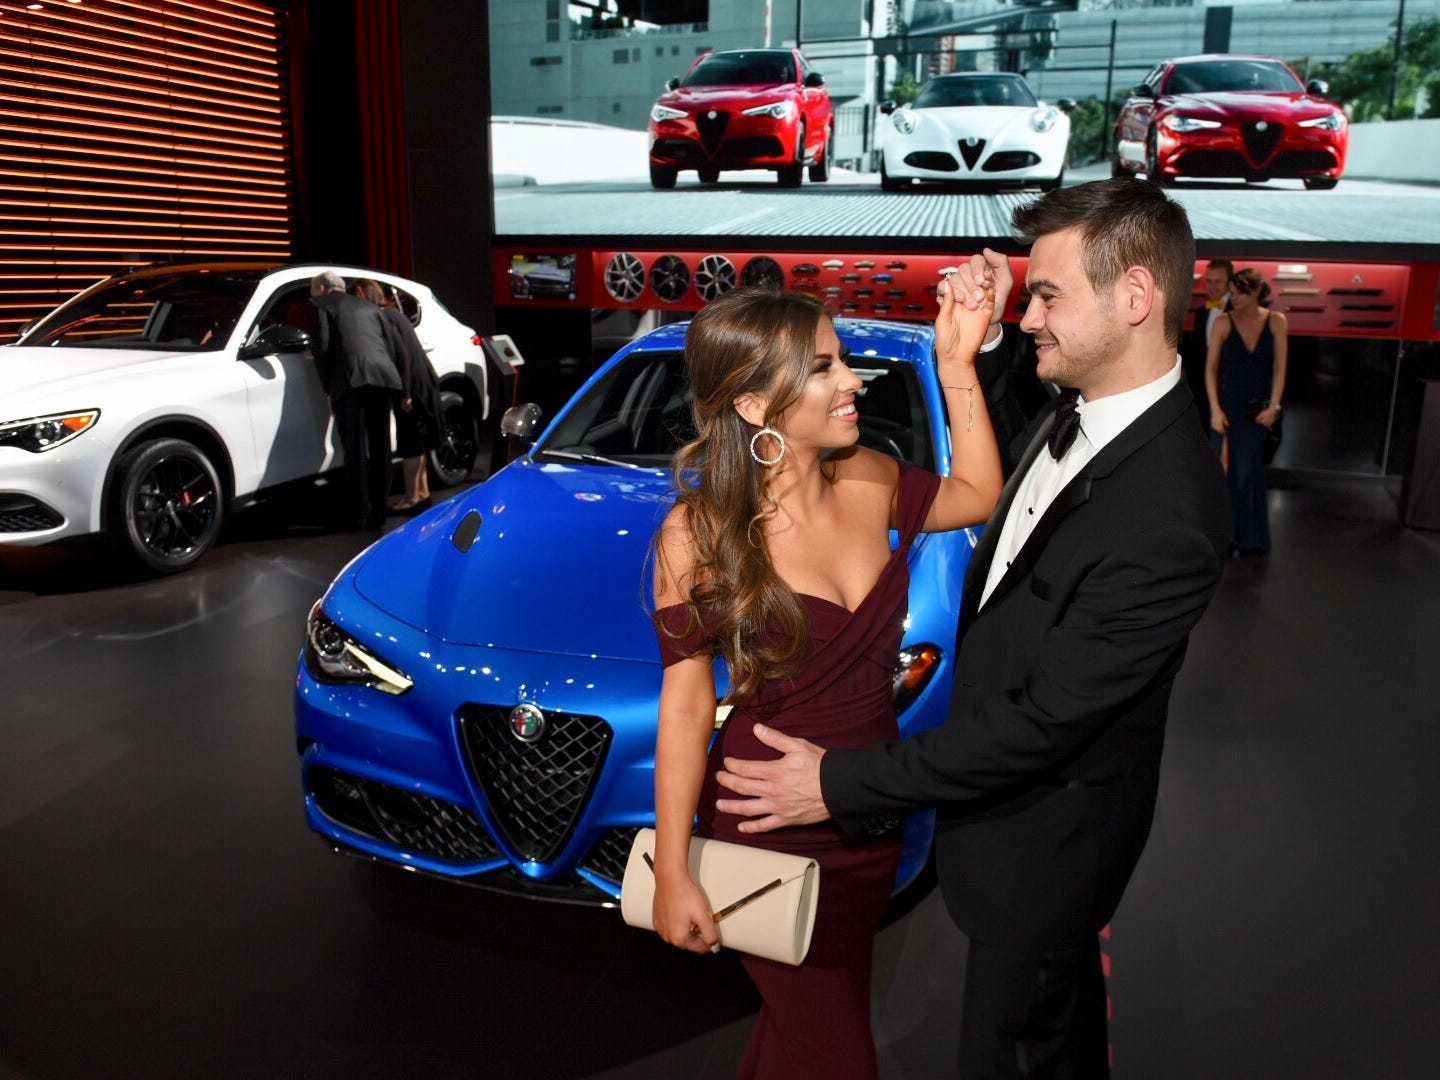 Adriana Francavilla and Antonio Ruggirello of Northville share a dance in front of an Alfa Romeo Giulia during the Charity Preview gala at the Detroit auto show at Cobo Center in Detroit on Friday, Jan. 18, 2019.